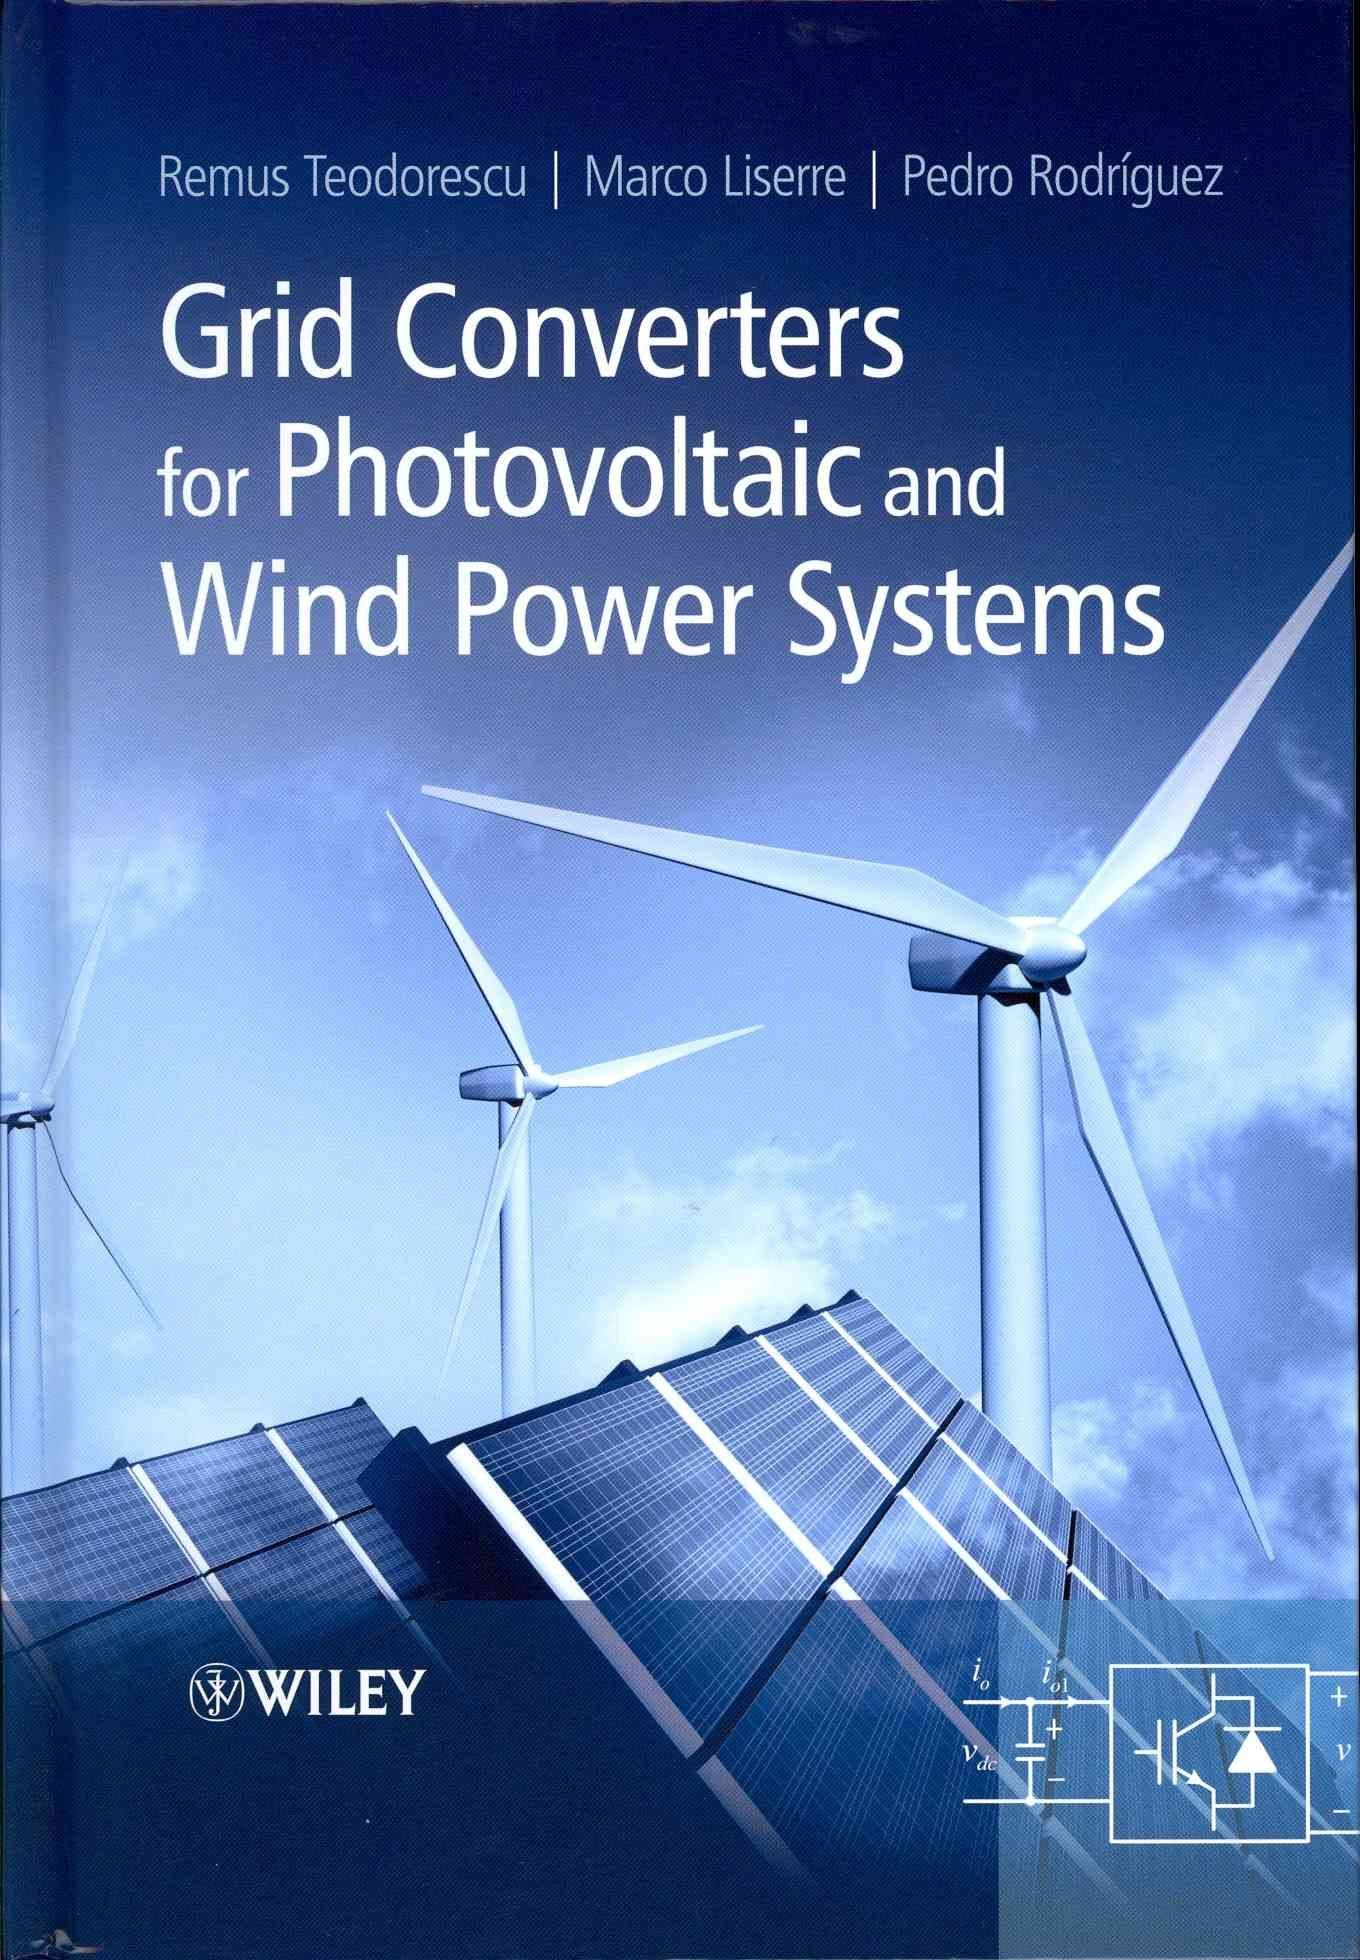 Grid Converters for Photovoltaic and Wind Power Systems - Remus Teodorescu